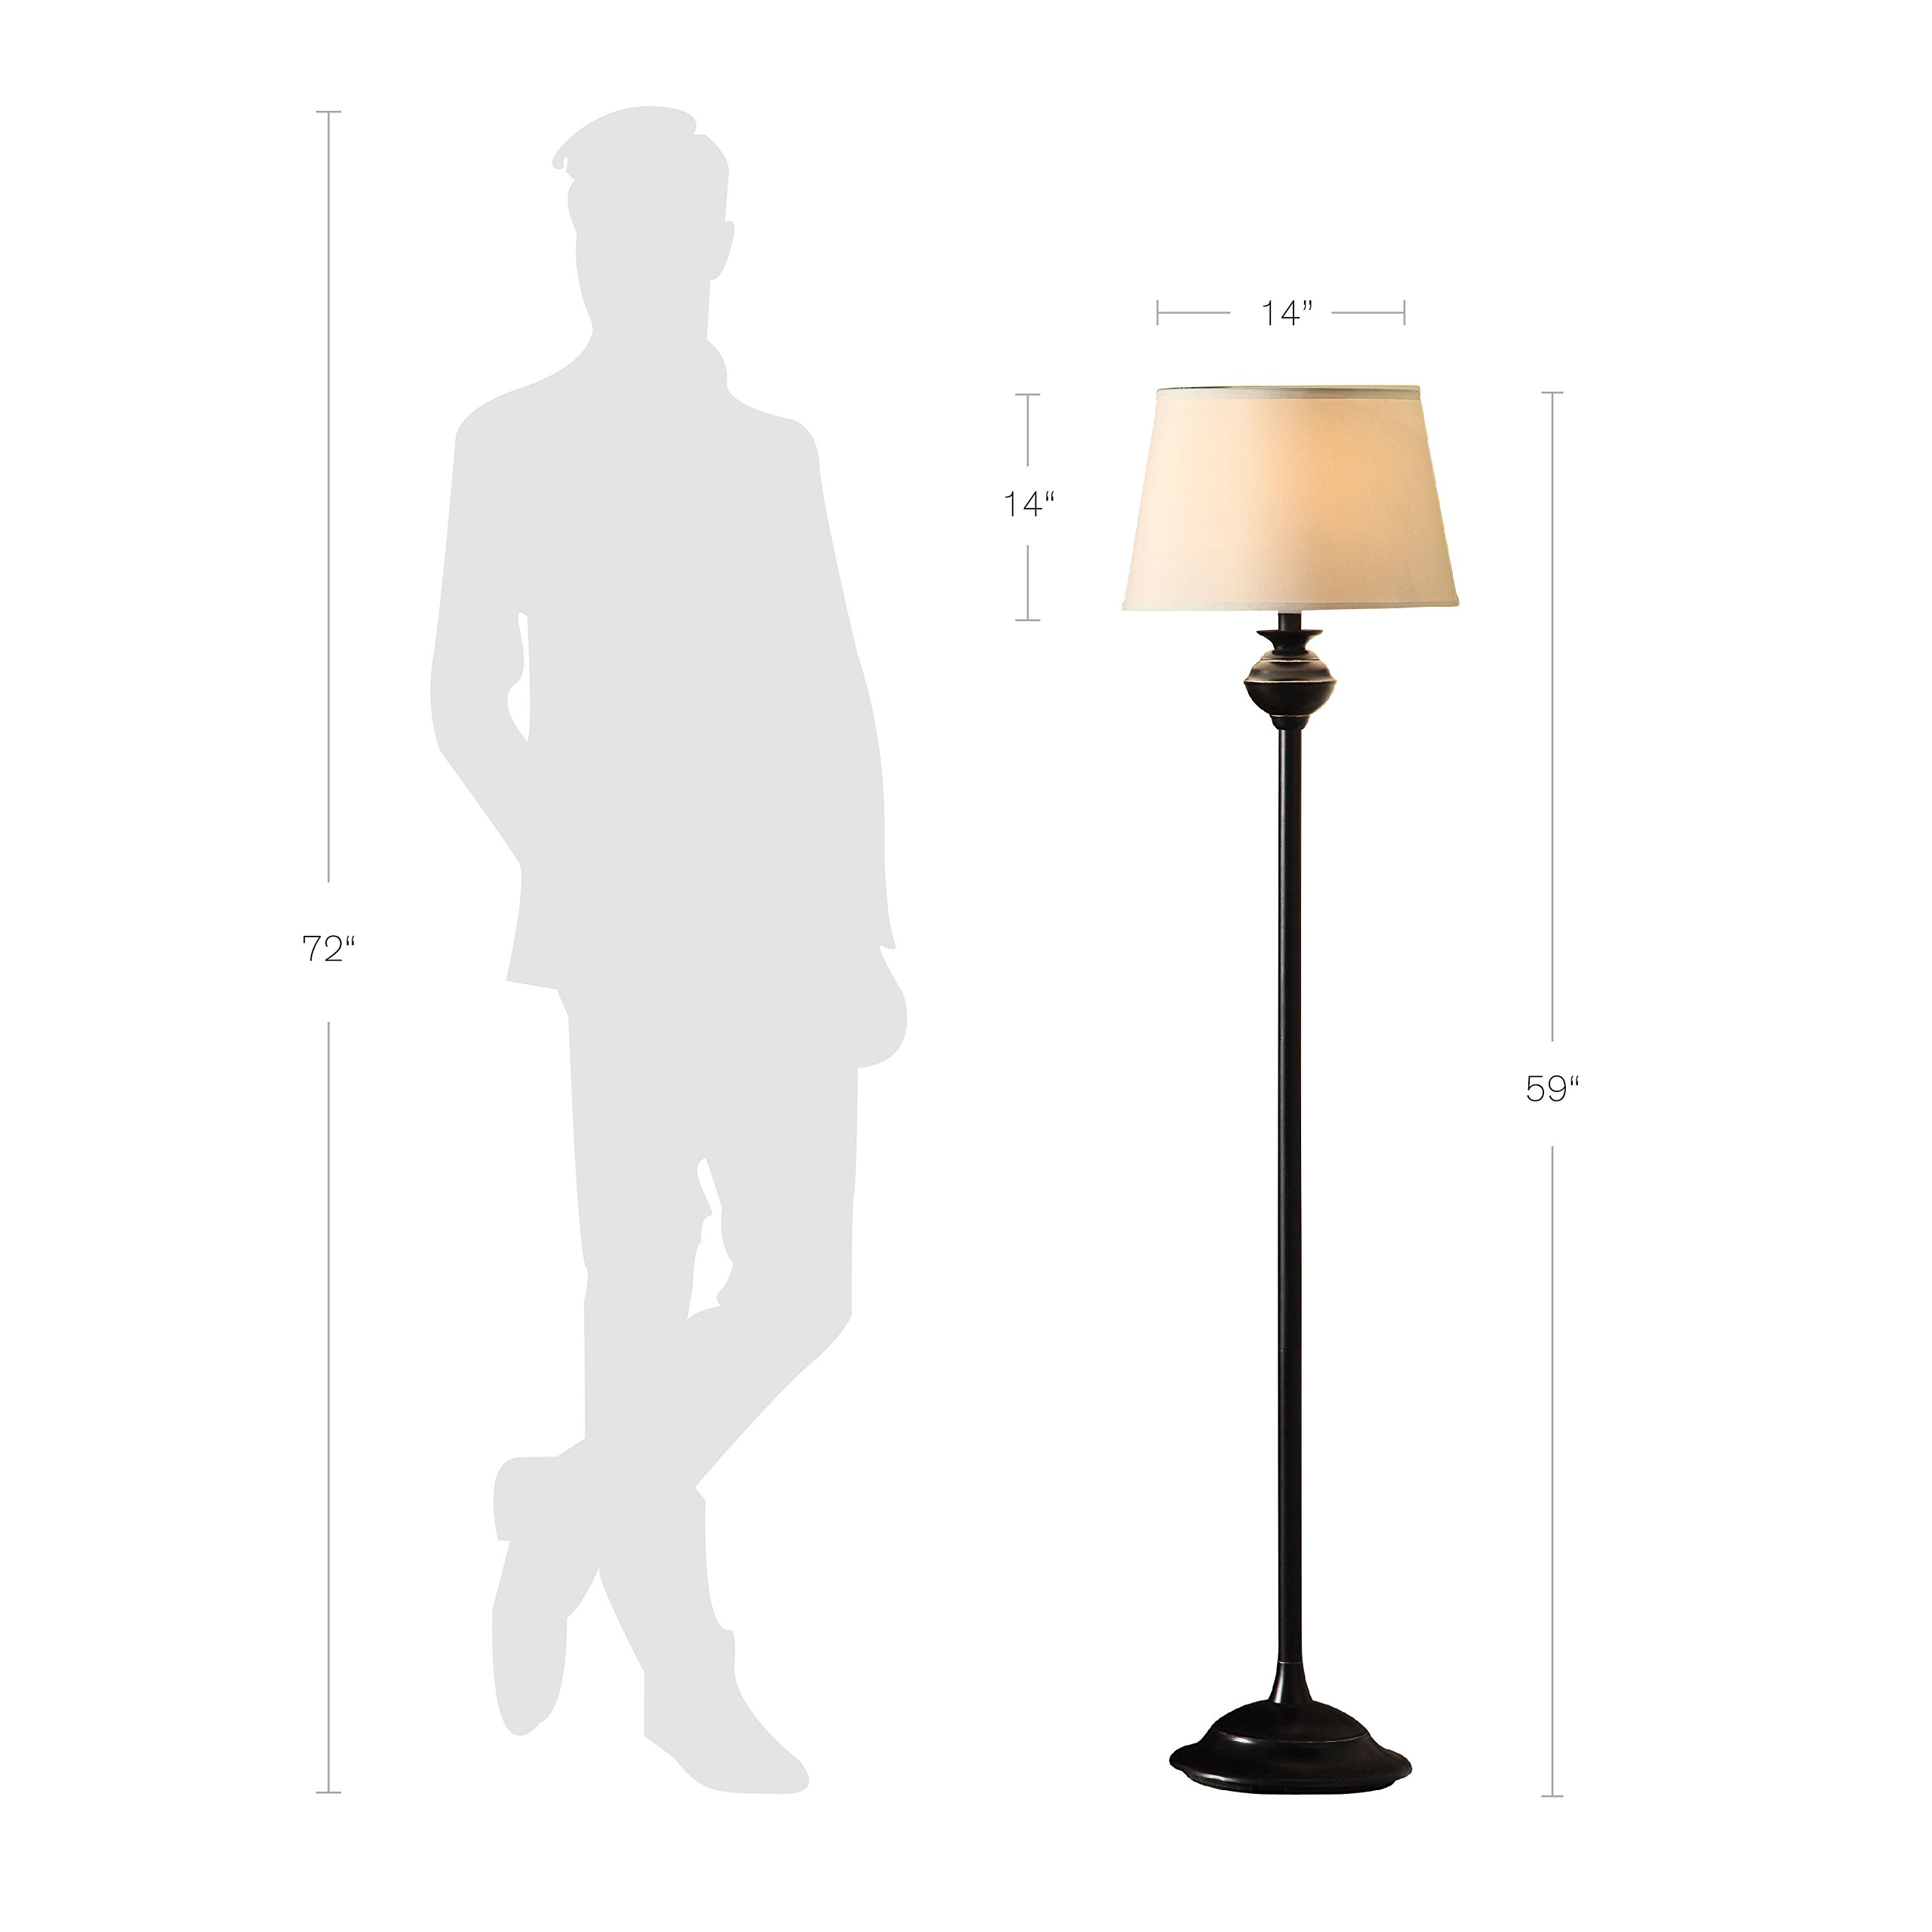 Catalina Lighting 18079-001 Traditional 3-Piece Metal Floor & Table Lamp Set with Linen Shades, Without Bulb, Black Classic by Catalina Lighting (Image #5)